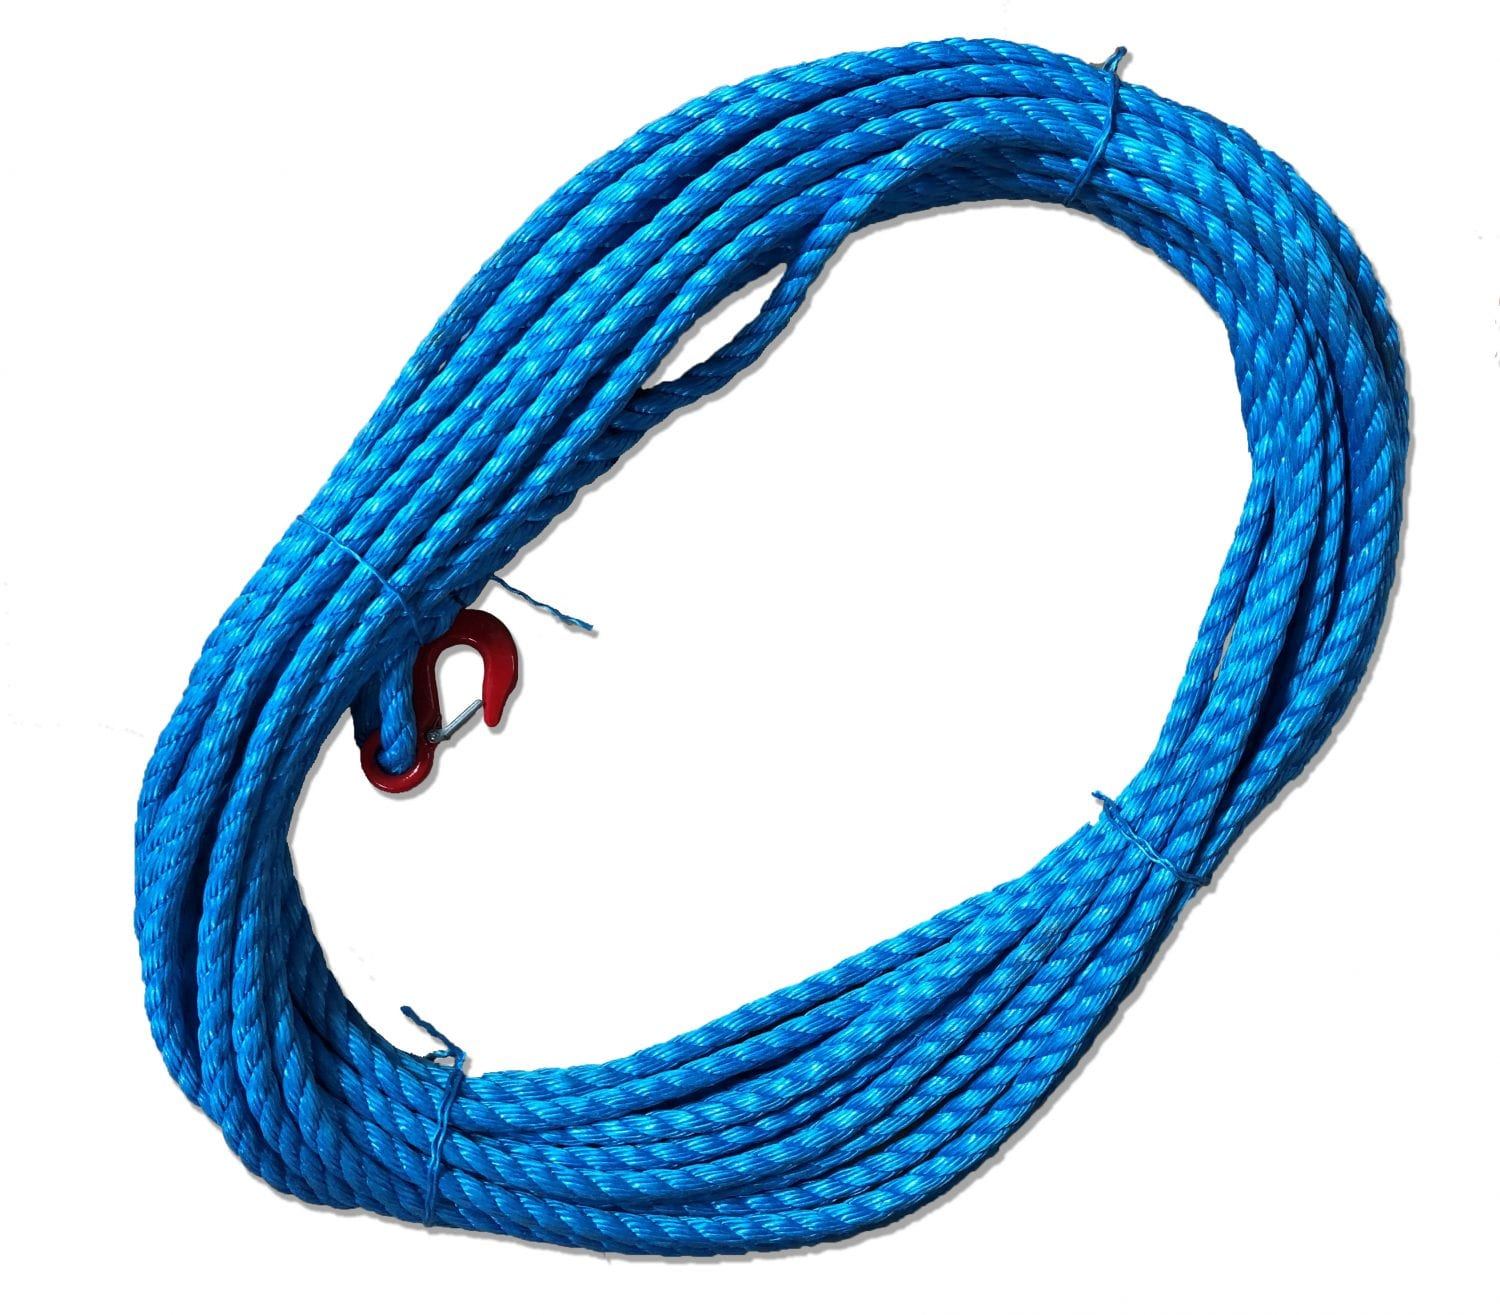 Securpulley rope